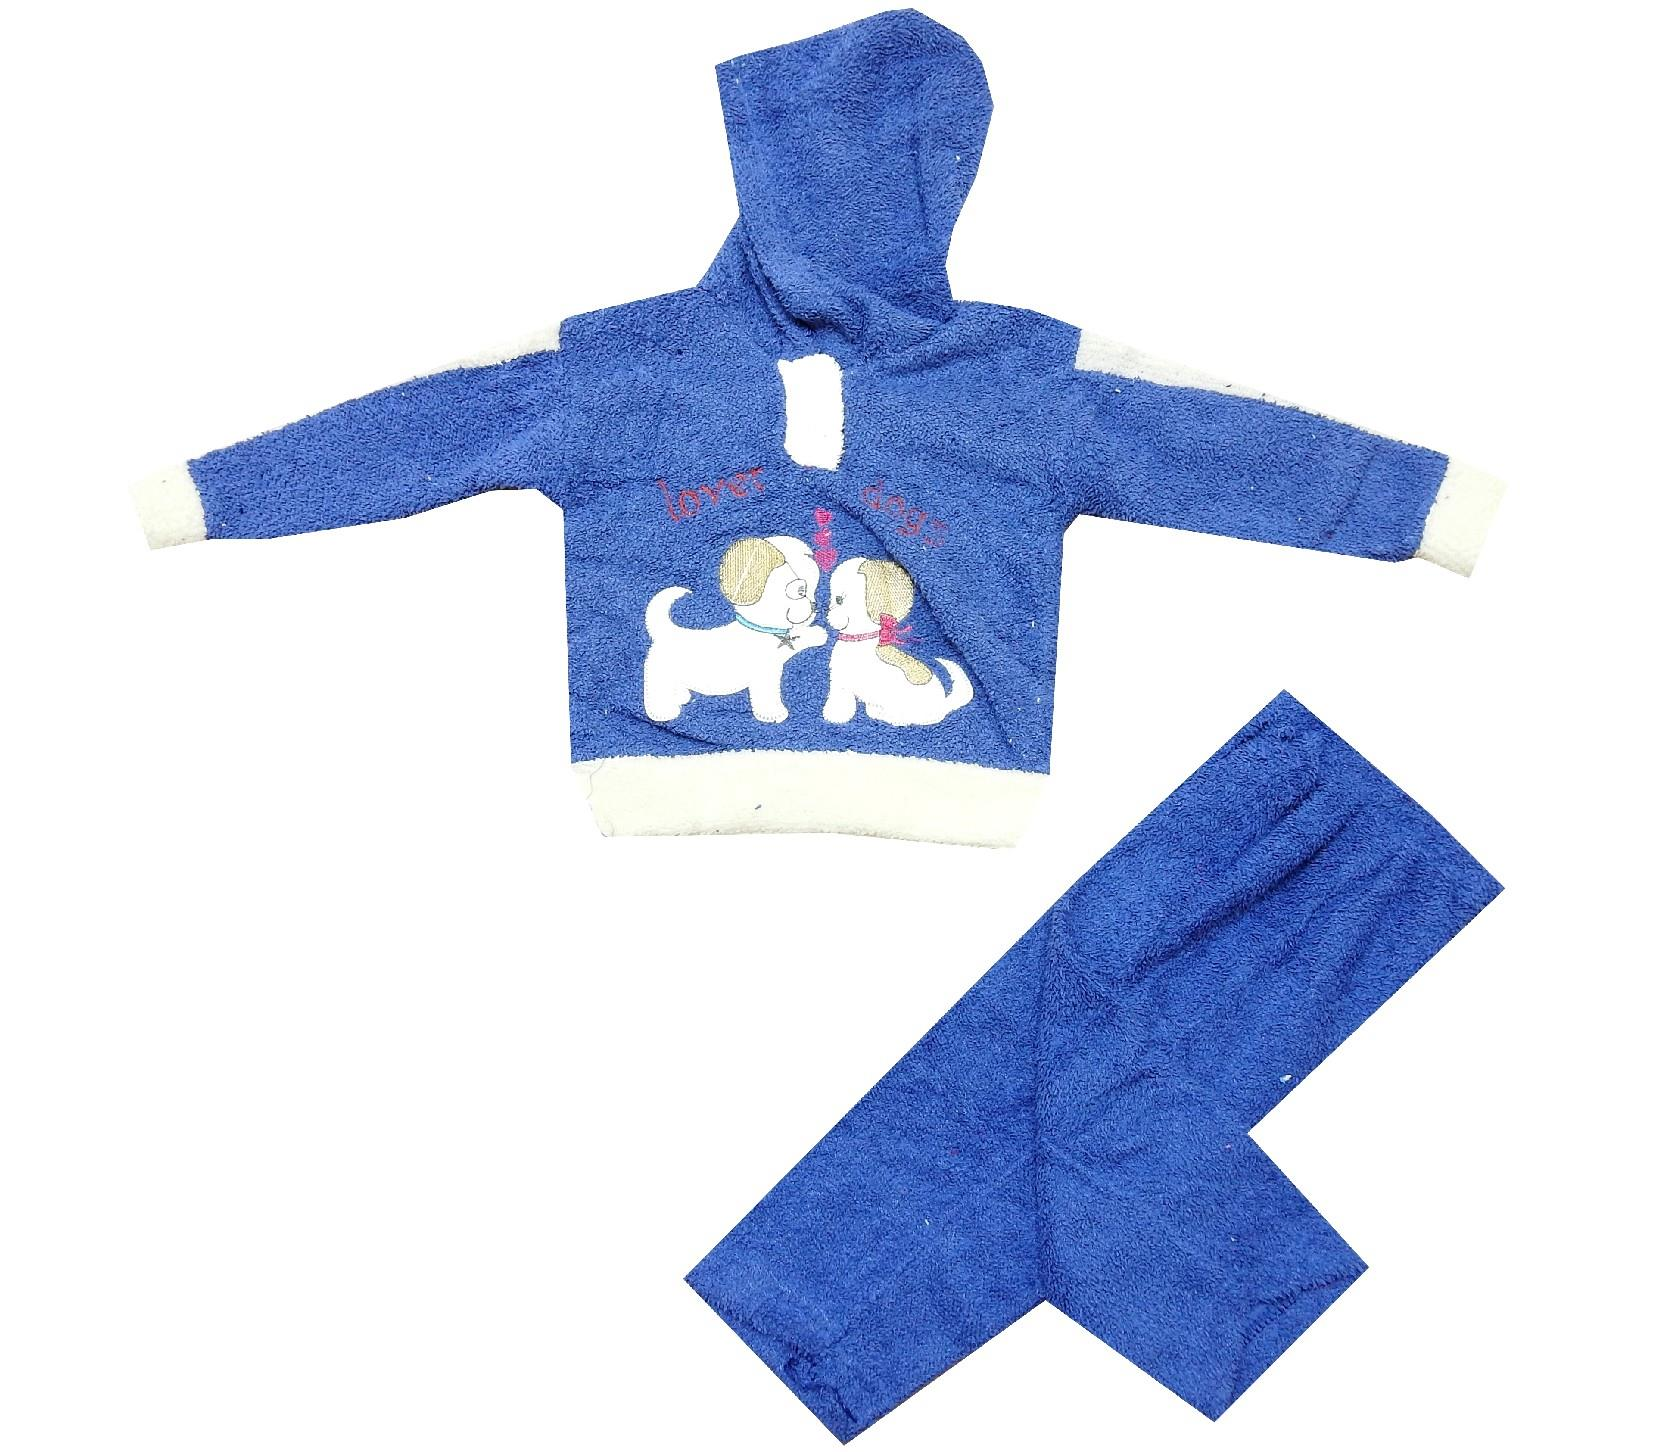 98541 wholesale faux shearling hooded printed jacket and trouser set for kids (3-6 month)